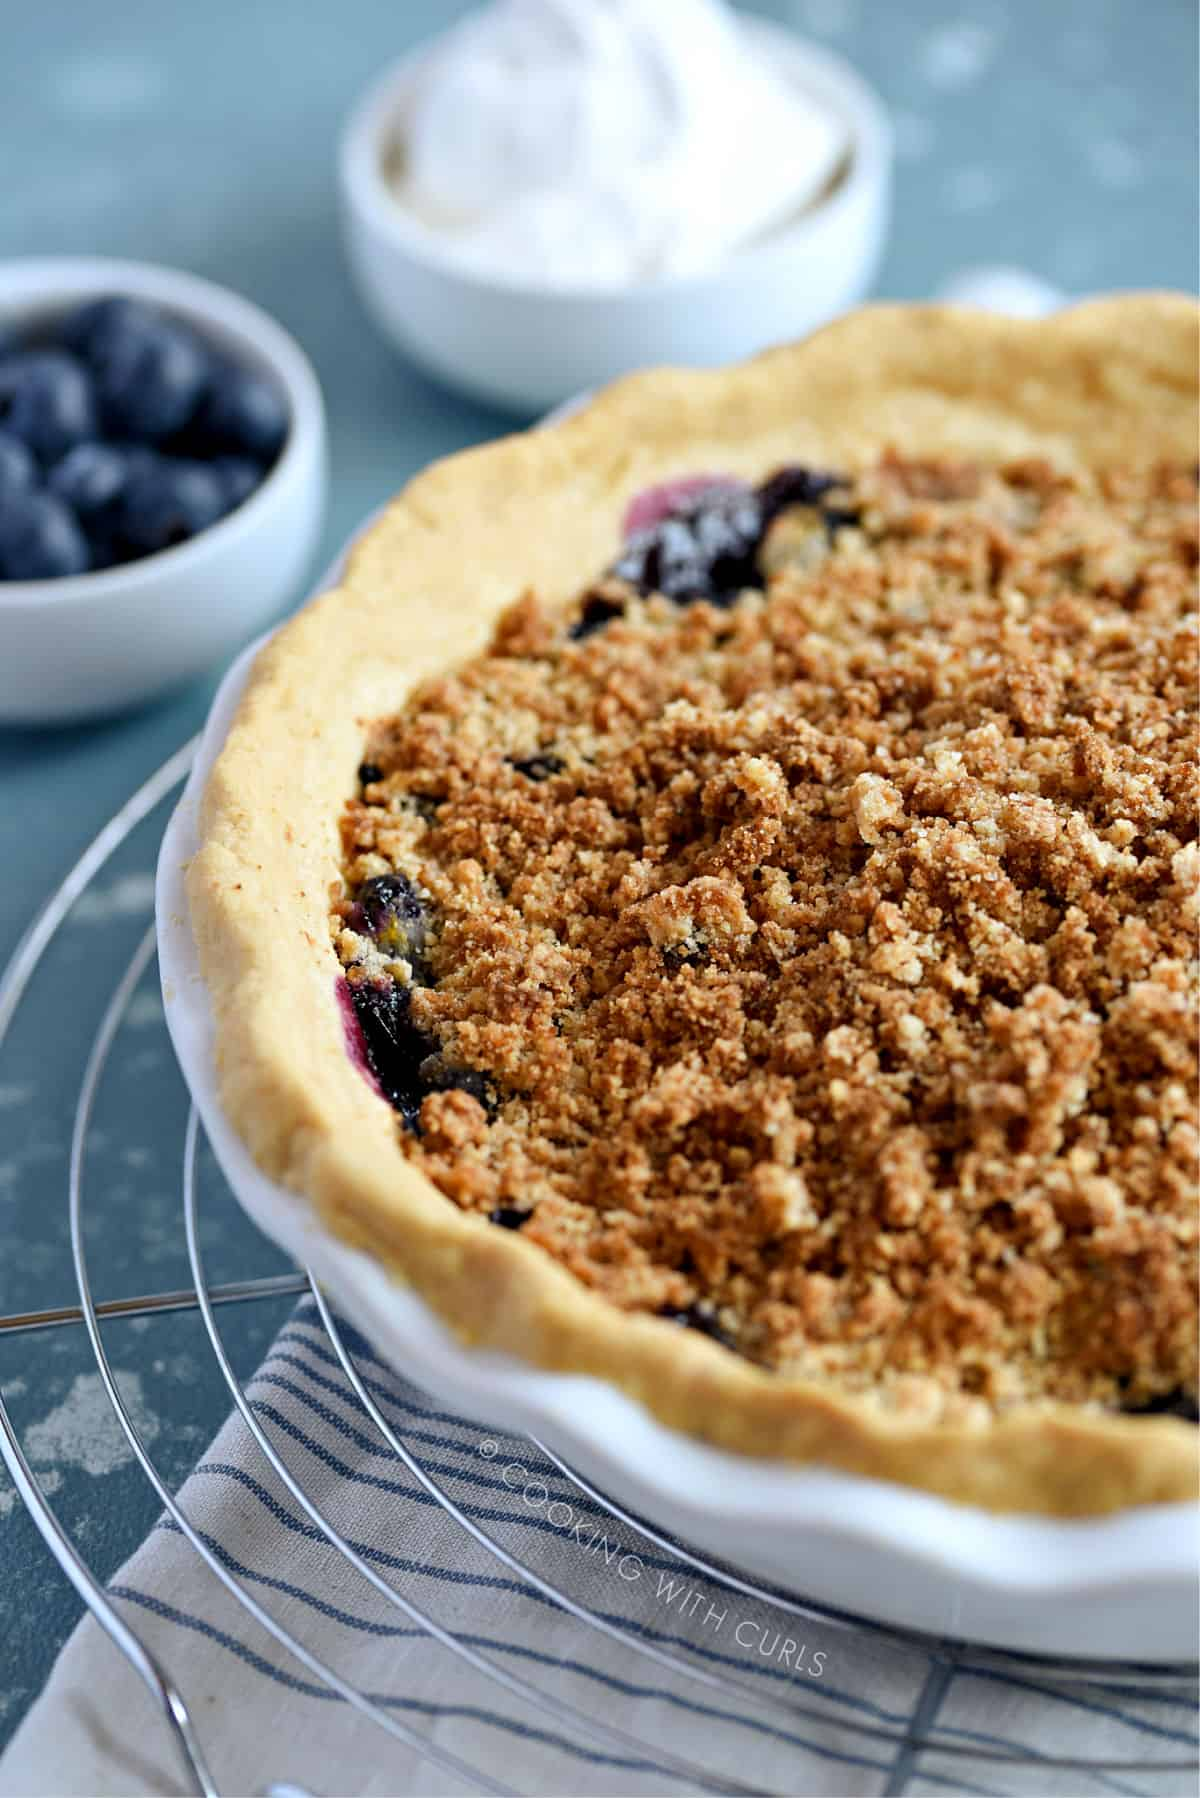 a close-up picture of a hot, fresh blueberry crumb pie on a wire cooling rack sitting on a blue and white towel with a bowl of blueberries and a bowl of whipped cream in the background.